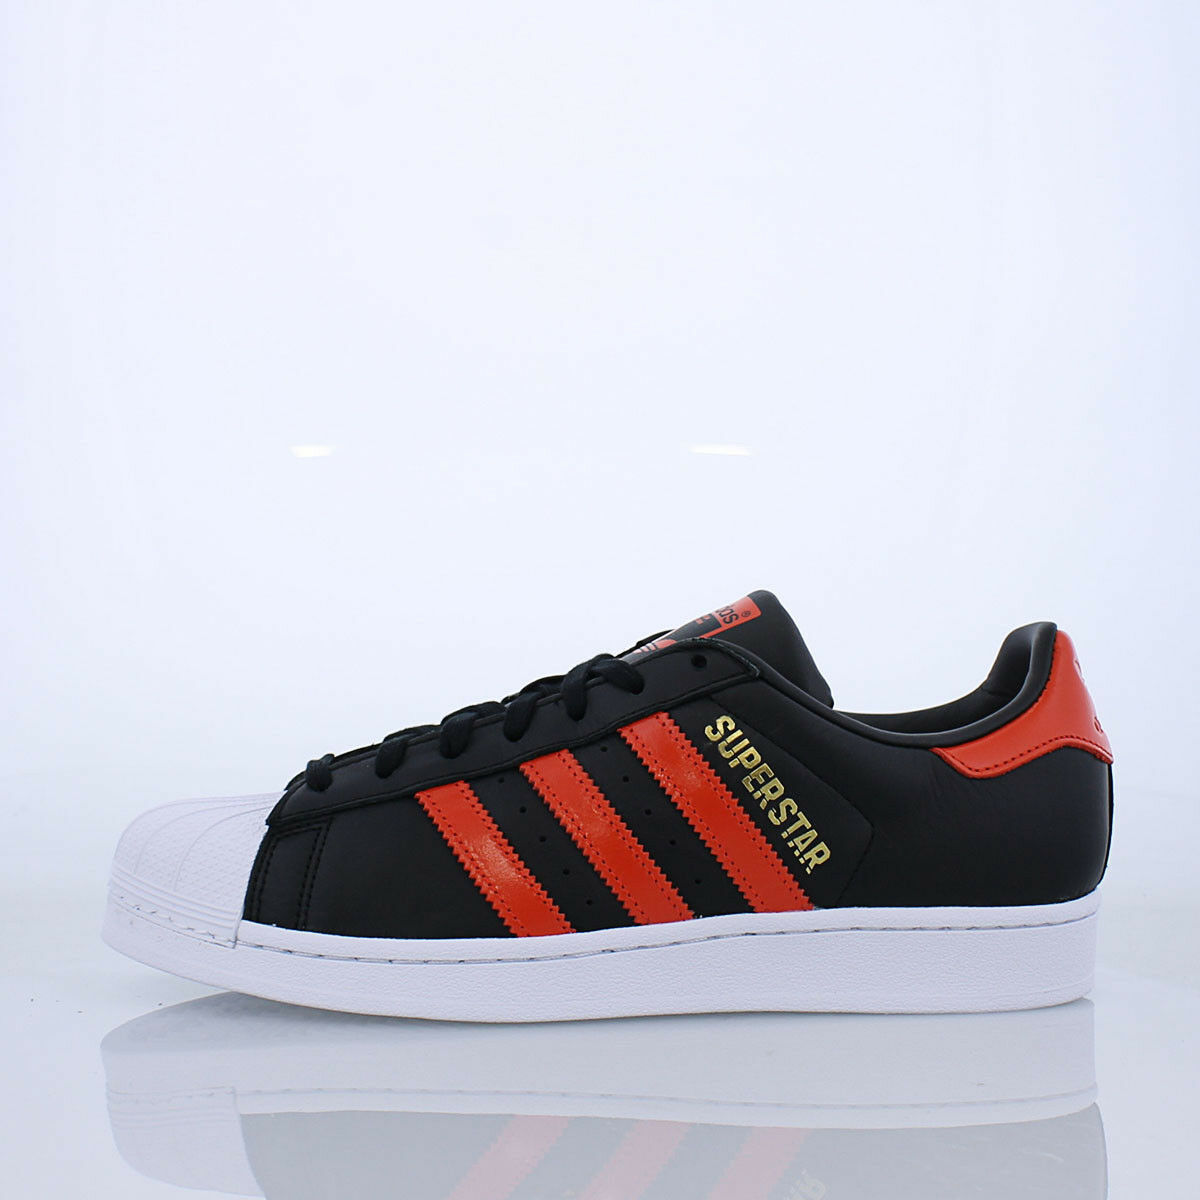 b41994-blk / adidas red / w - adidas / superstar 5cb729